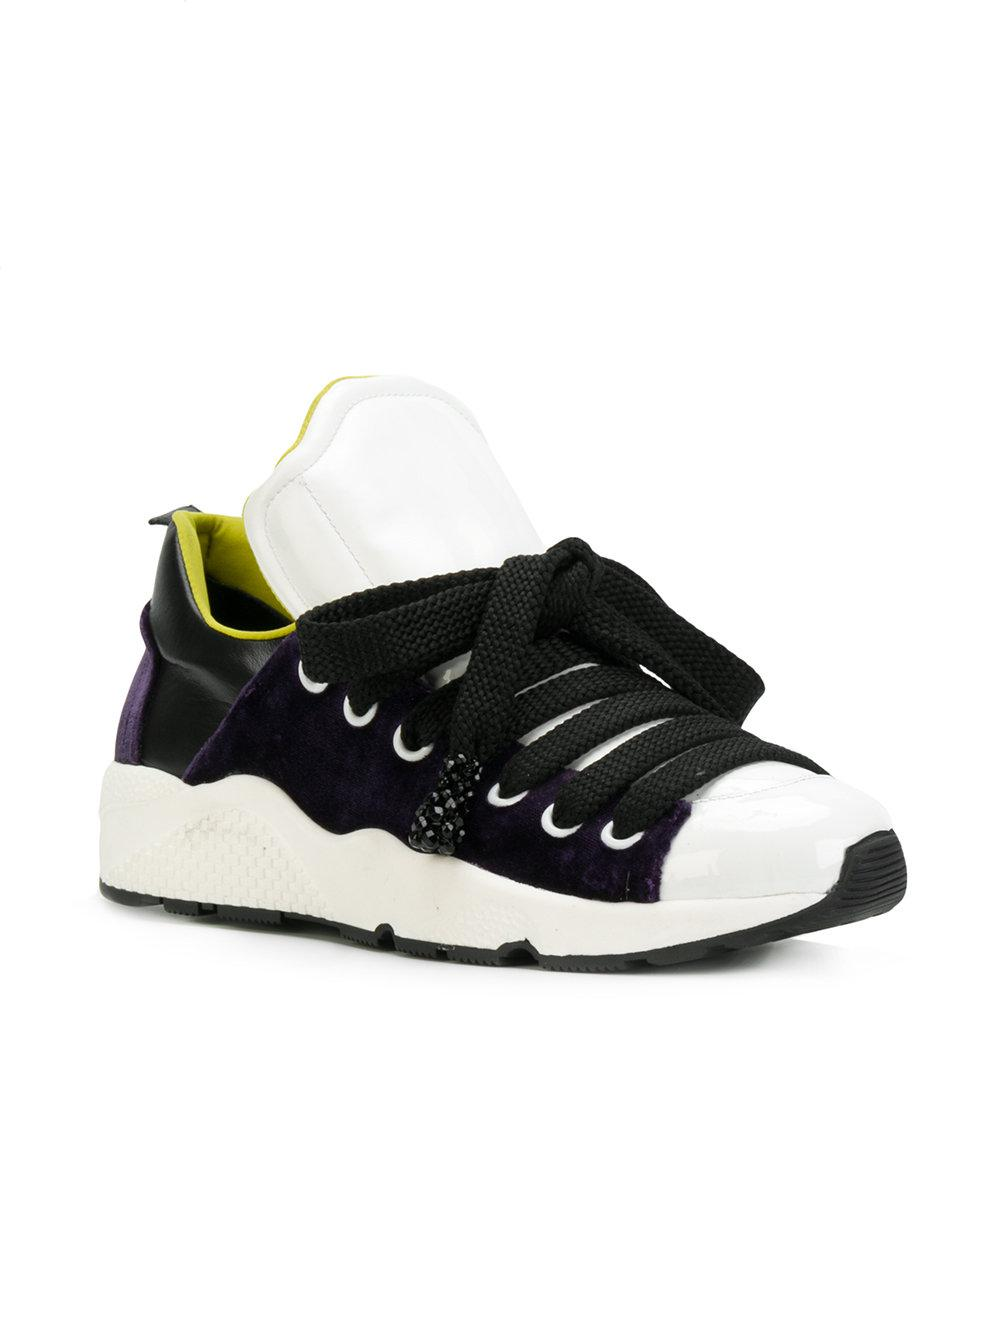 Lyst - NO KA  OI Colourblock Low Top Sneakers in White 08625fa07